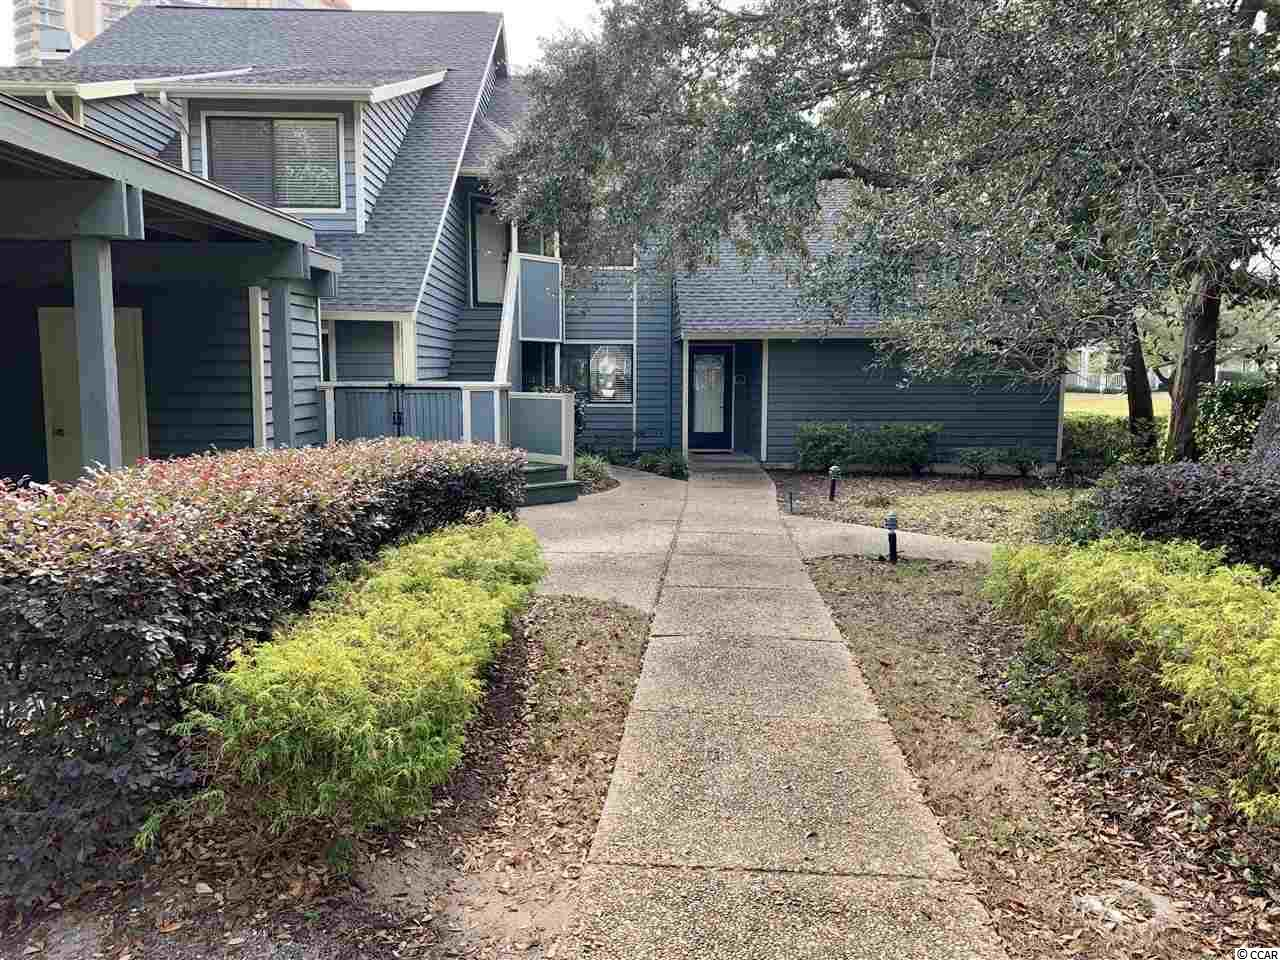 """Rare find! 1 bedroom in St James Park here in Kingston Plantation. In this oceanfront gated community you will find this beautiful spacious 1 bedroom first floor condo. The HVAC was just replaced at the end of December 2019. This community is surrounded by nature, with ponds, lakes, paths, walking distance to the ocean and access to many incredible aminites. Located on the north end of Myrtle Beach, you will find this quite community memoriable, and a nice oasis from the hustle and busle. Just a short drive away from shopping and some of the best restarunts in town. St James Park is highly sought after, being one of the few communities in Kingston Plantation with covered parking and outdoor storage. If you are looking for privacy and  """"true home"""" feeling in a beach getaway, look no futher!"""